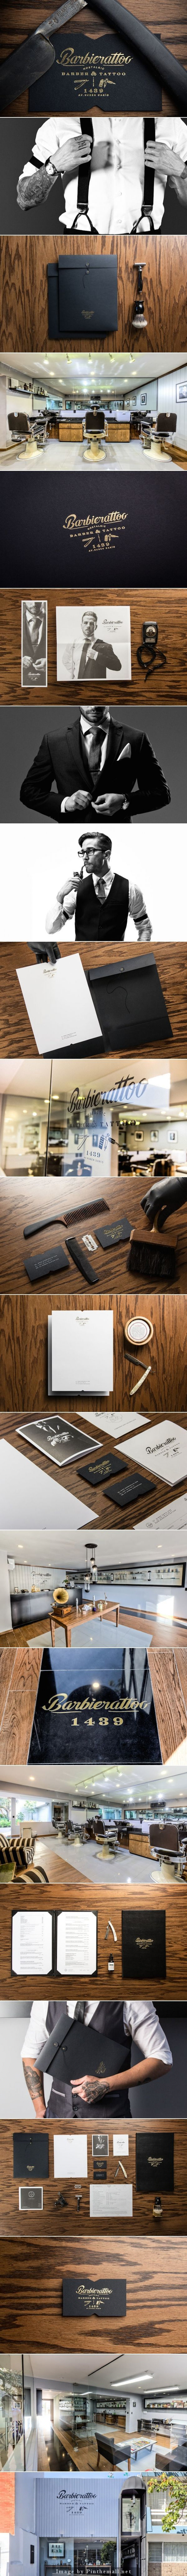 www.behance.net/… I especially like the packaging – the black envelope with th…